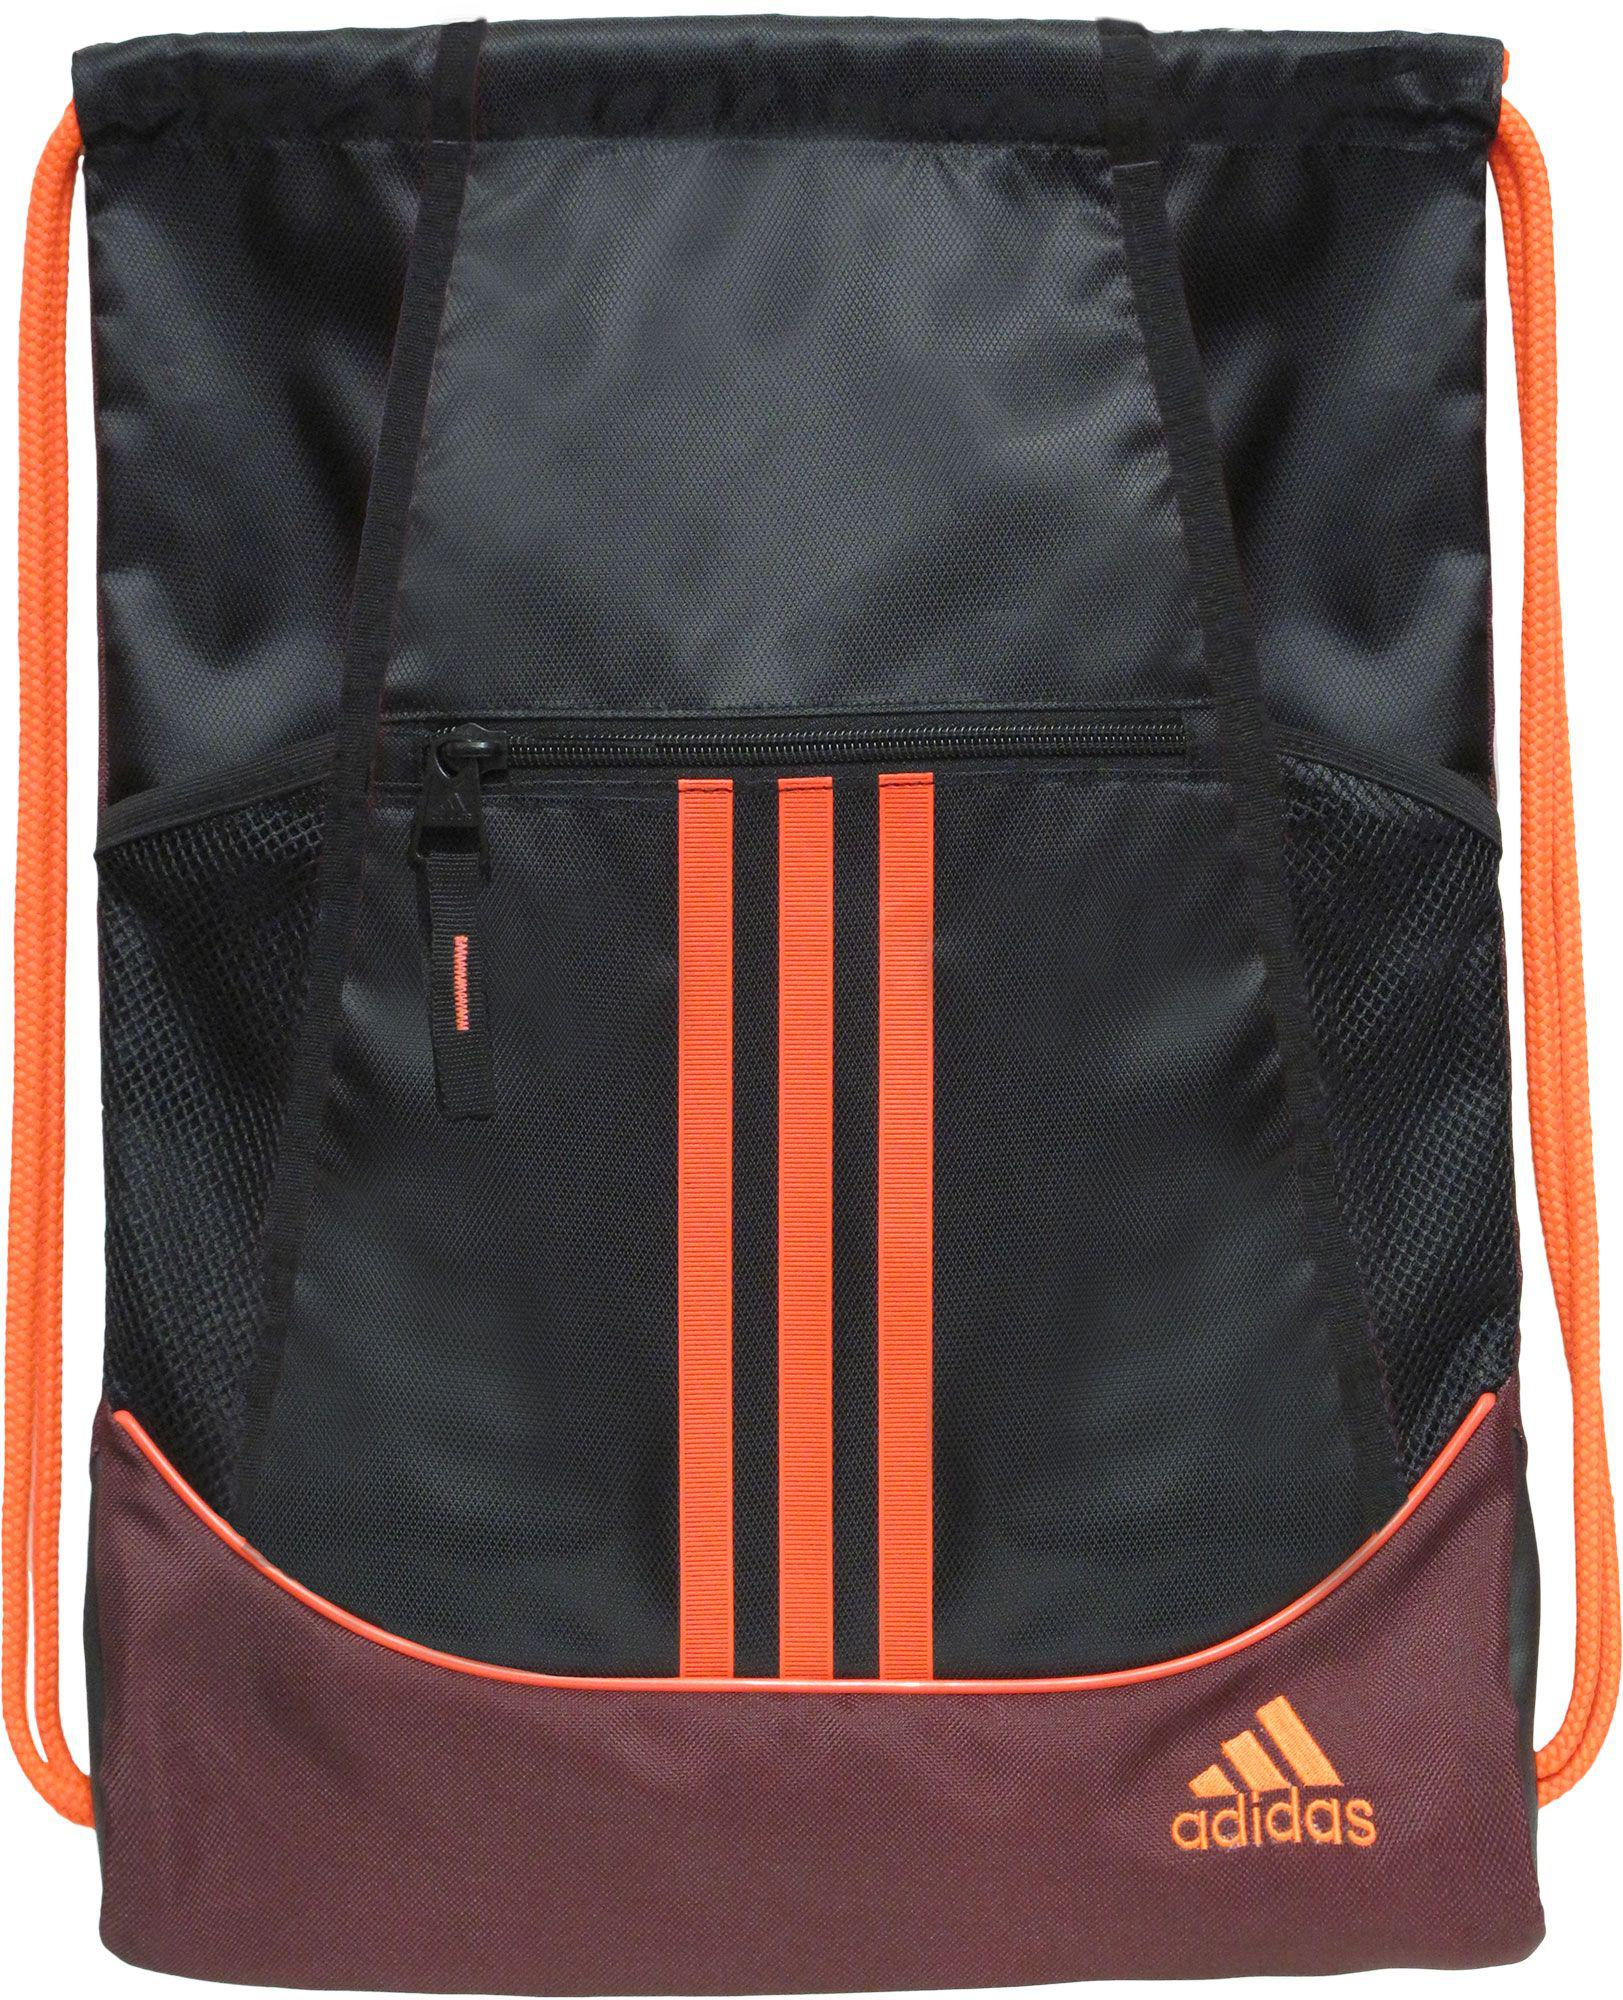 6681eea30 Lyst - adidas Alliance Ii Sack Pack in Red for Men